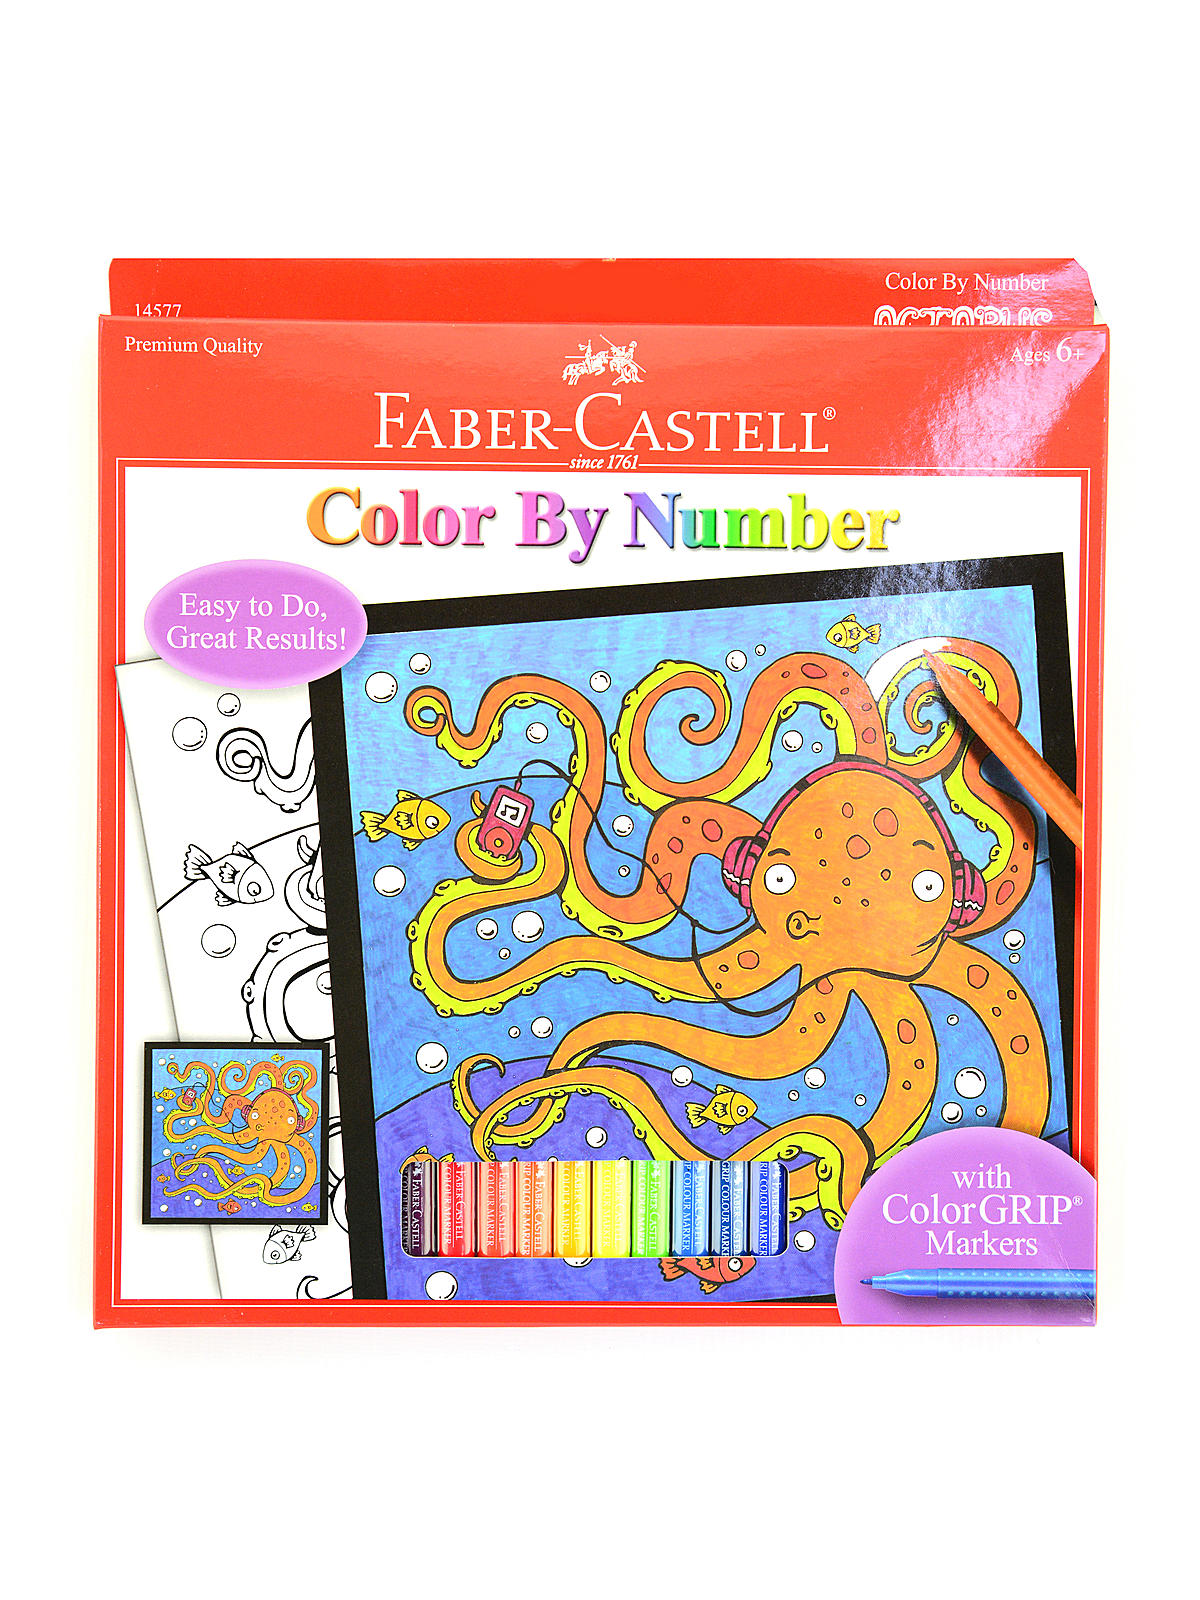 Colour By Number Kits : Faber Castell Color by Number with Markers Kits MisterArt.com